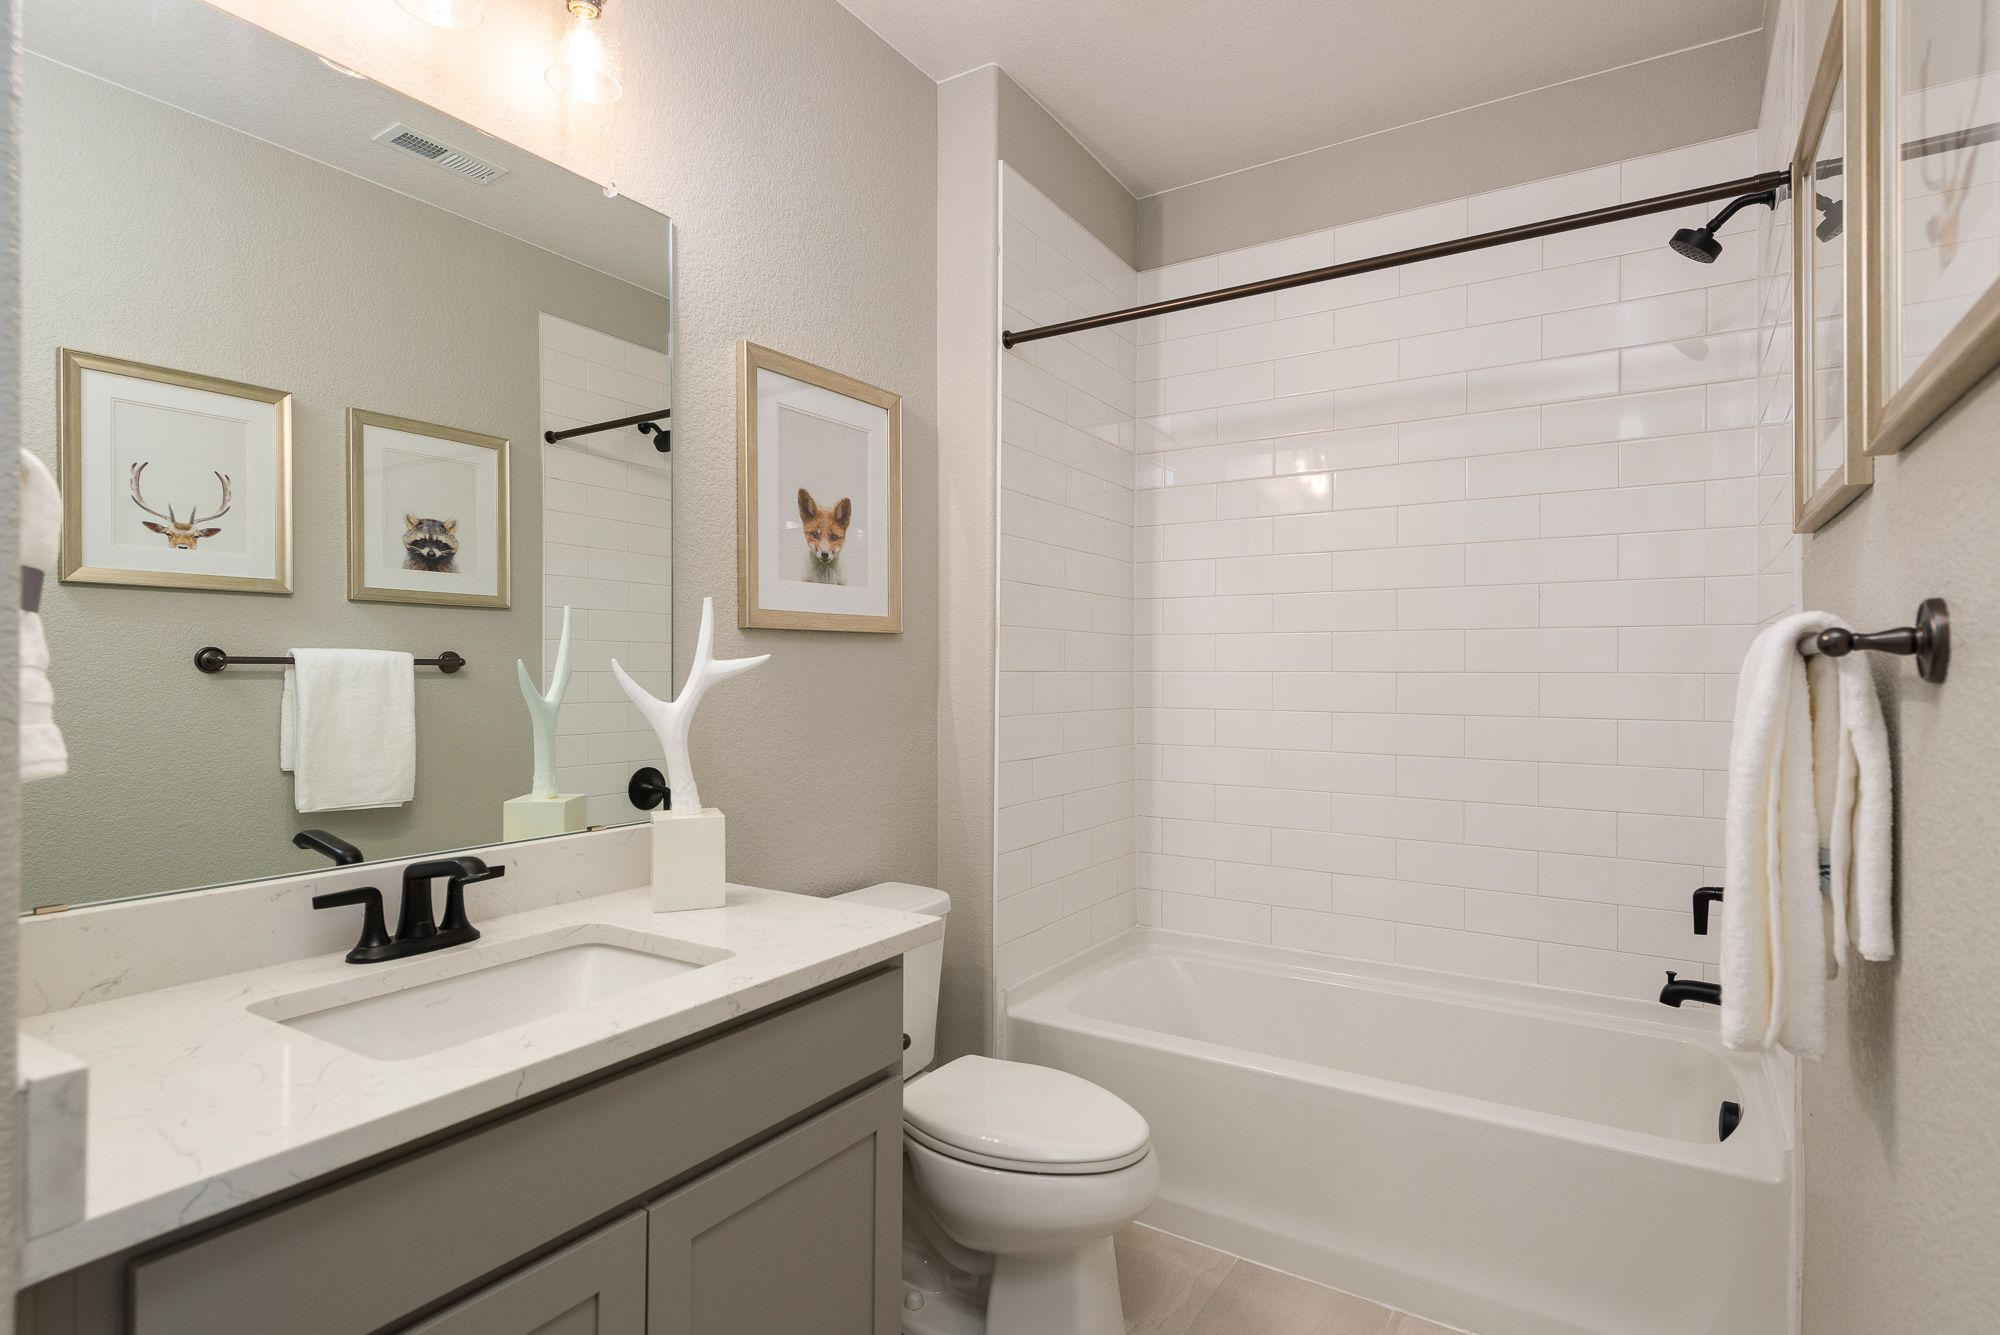 Bathroom featured in the Stella By Lokal Homes in Fort Collins-Loveland, CO